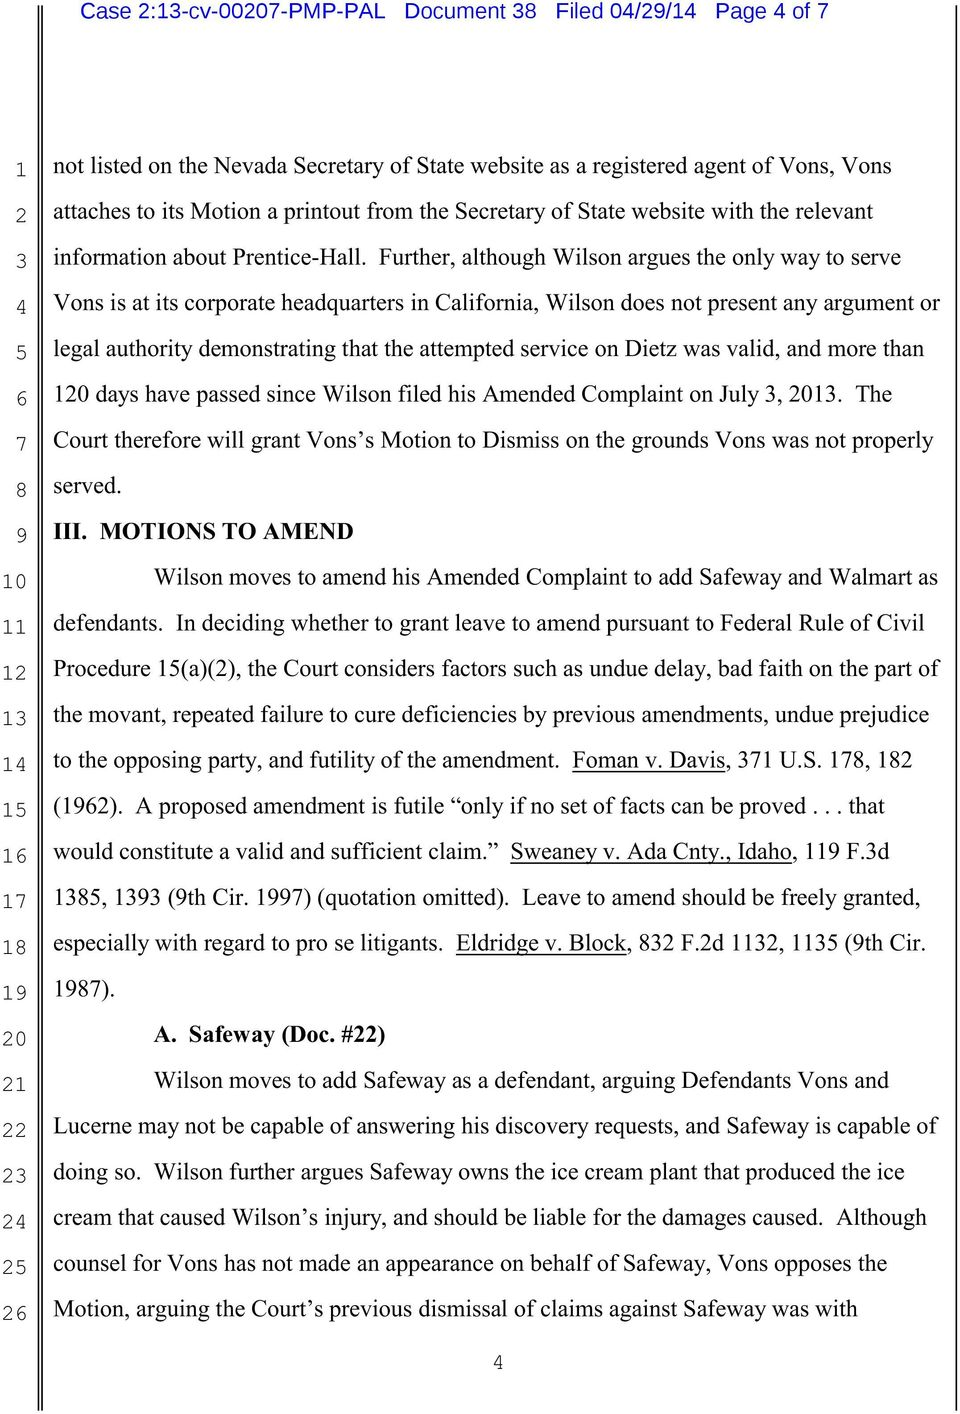 Further, although Wilson argues the only way to serve Vons is at its corporate headquarters in California, Wilson does not present any argument or legal authority demonstrating that the attempted